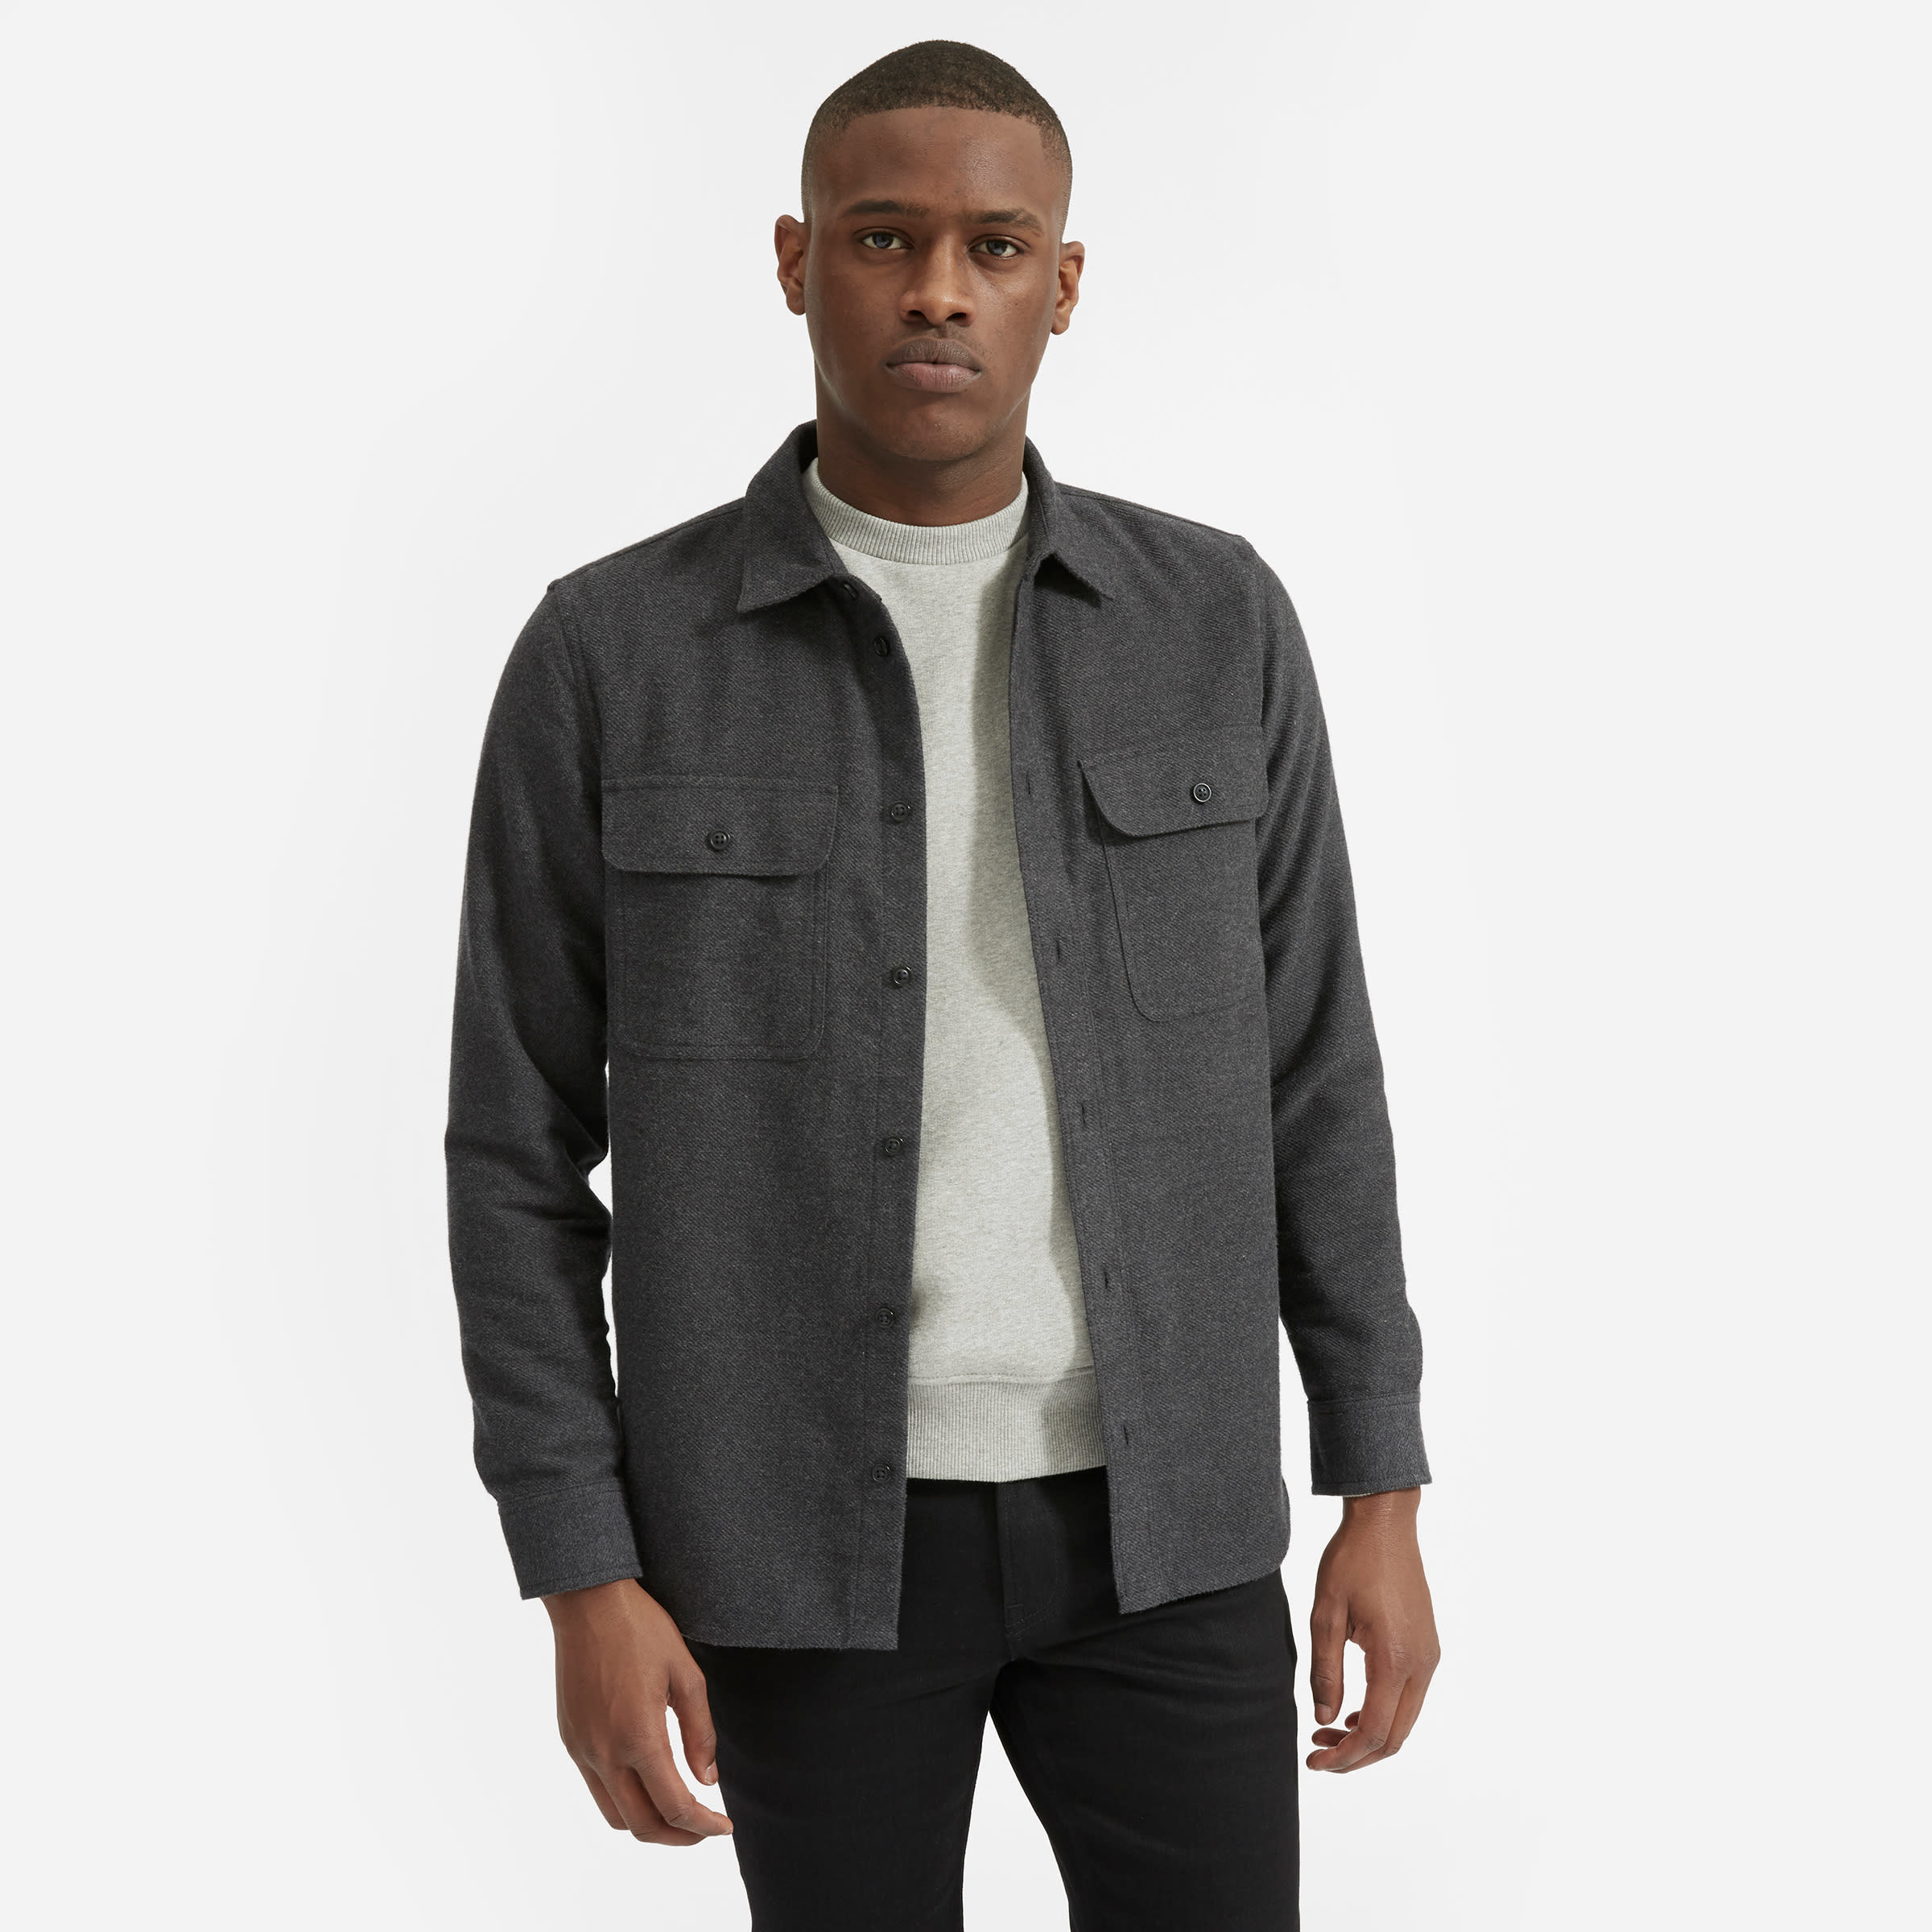 Model wearing the button-down shirt with buttoned pockets on each side in dark grey